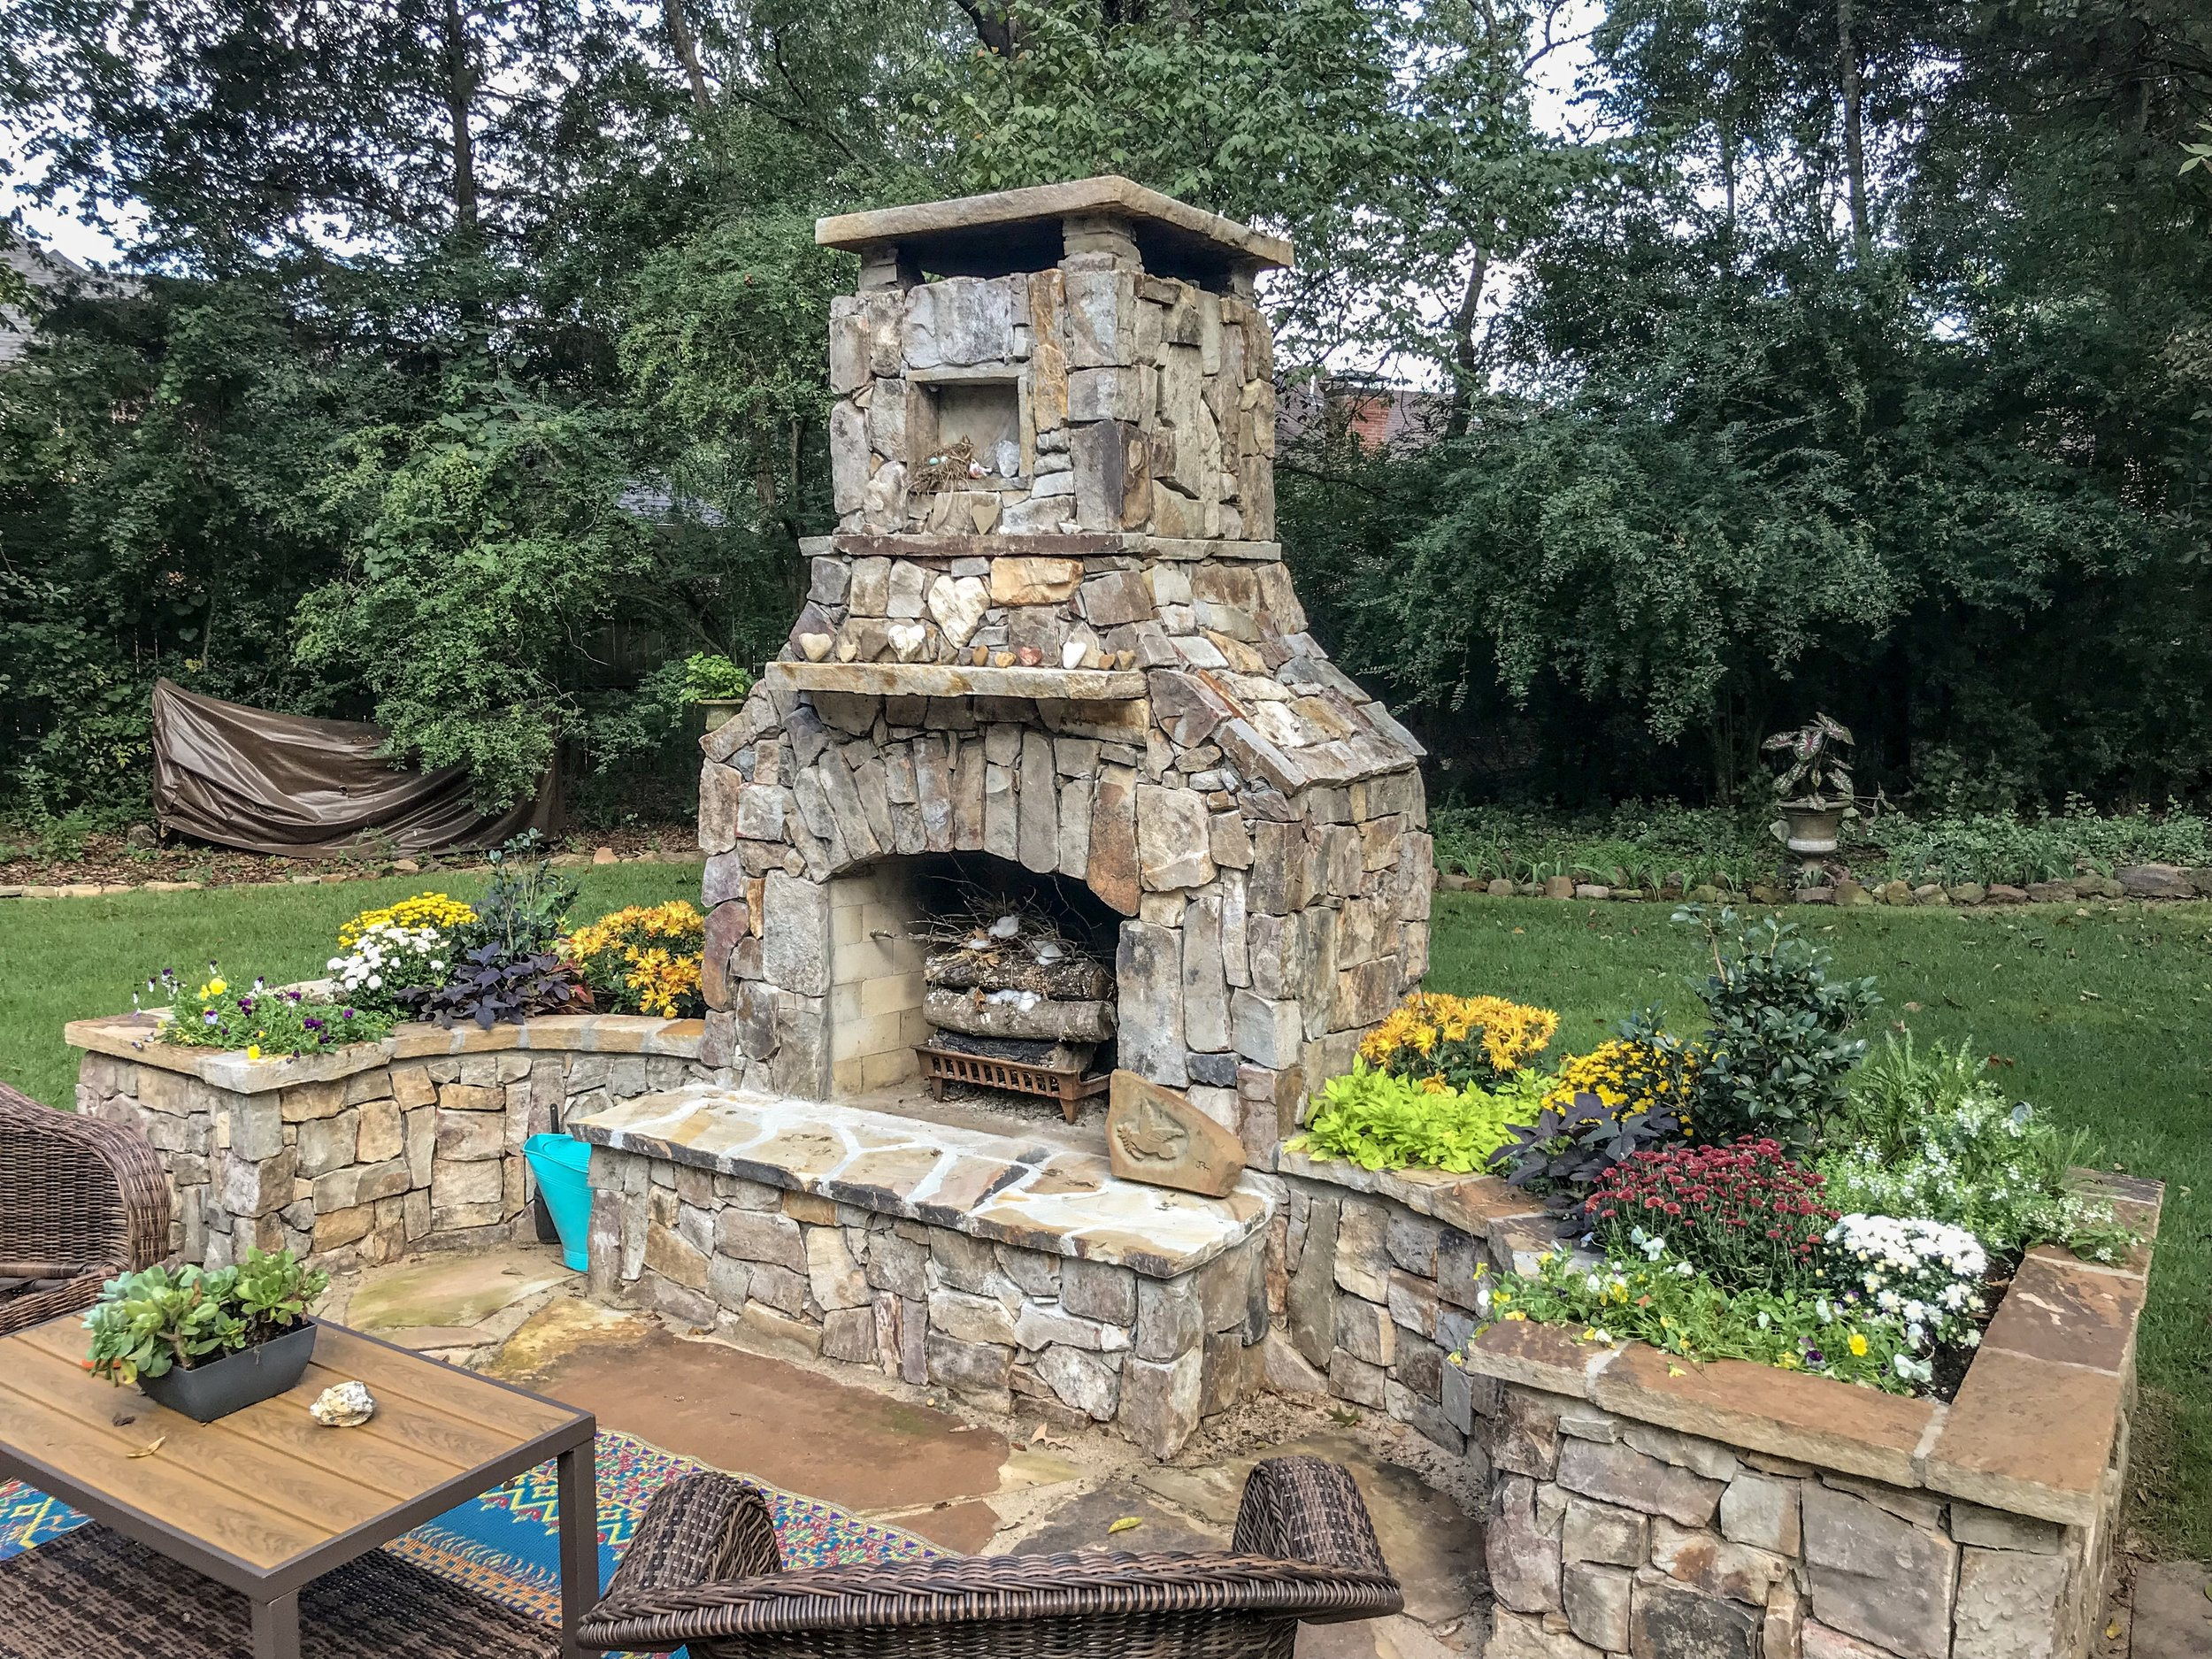 Outdoor Fireplace Installation - Bringing the enjoyment of the outdoors year round, we install fire pits as well as true masonry fireplaces that will provide warmth and a cozy feel to every outdoor space